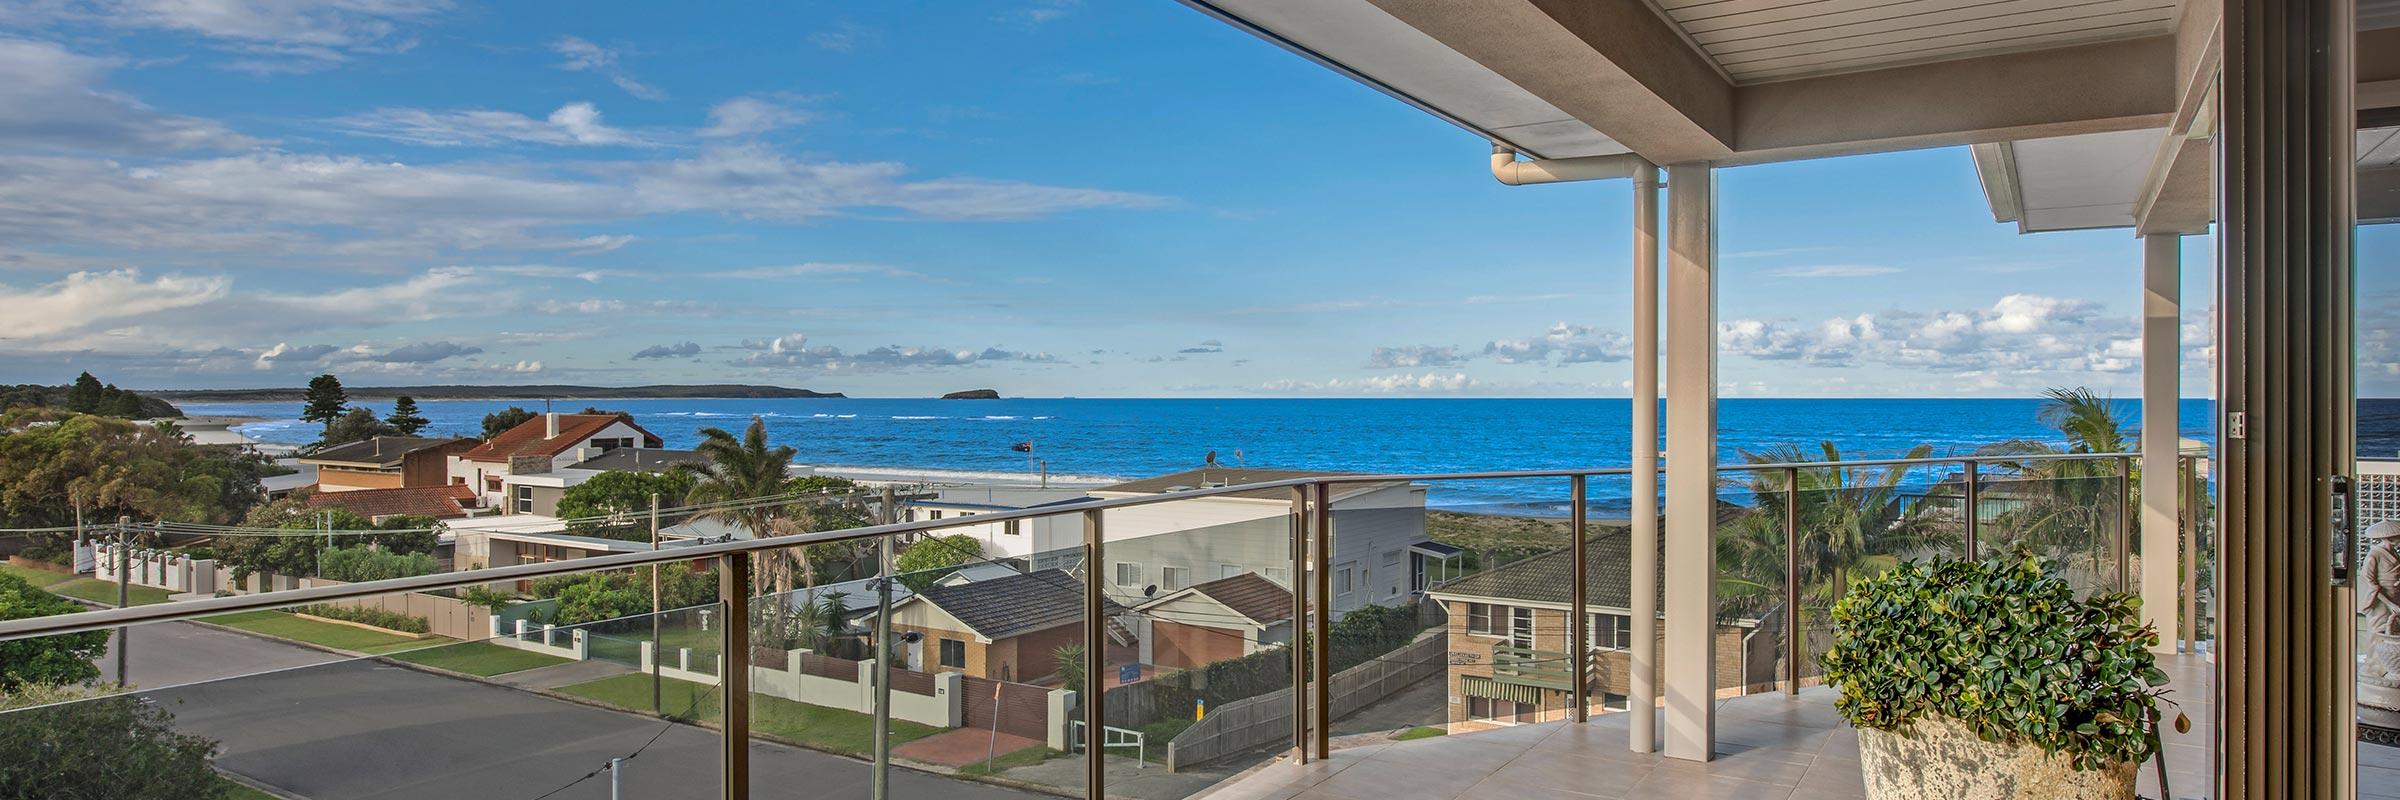 Hargraves Beach House veranda view